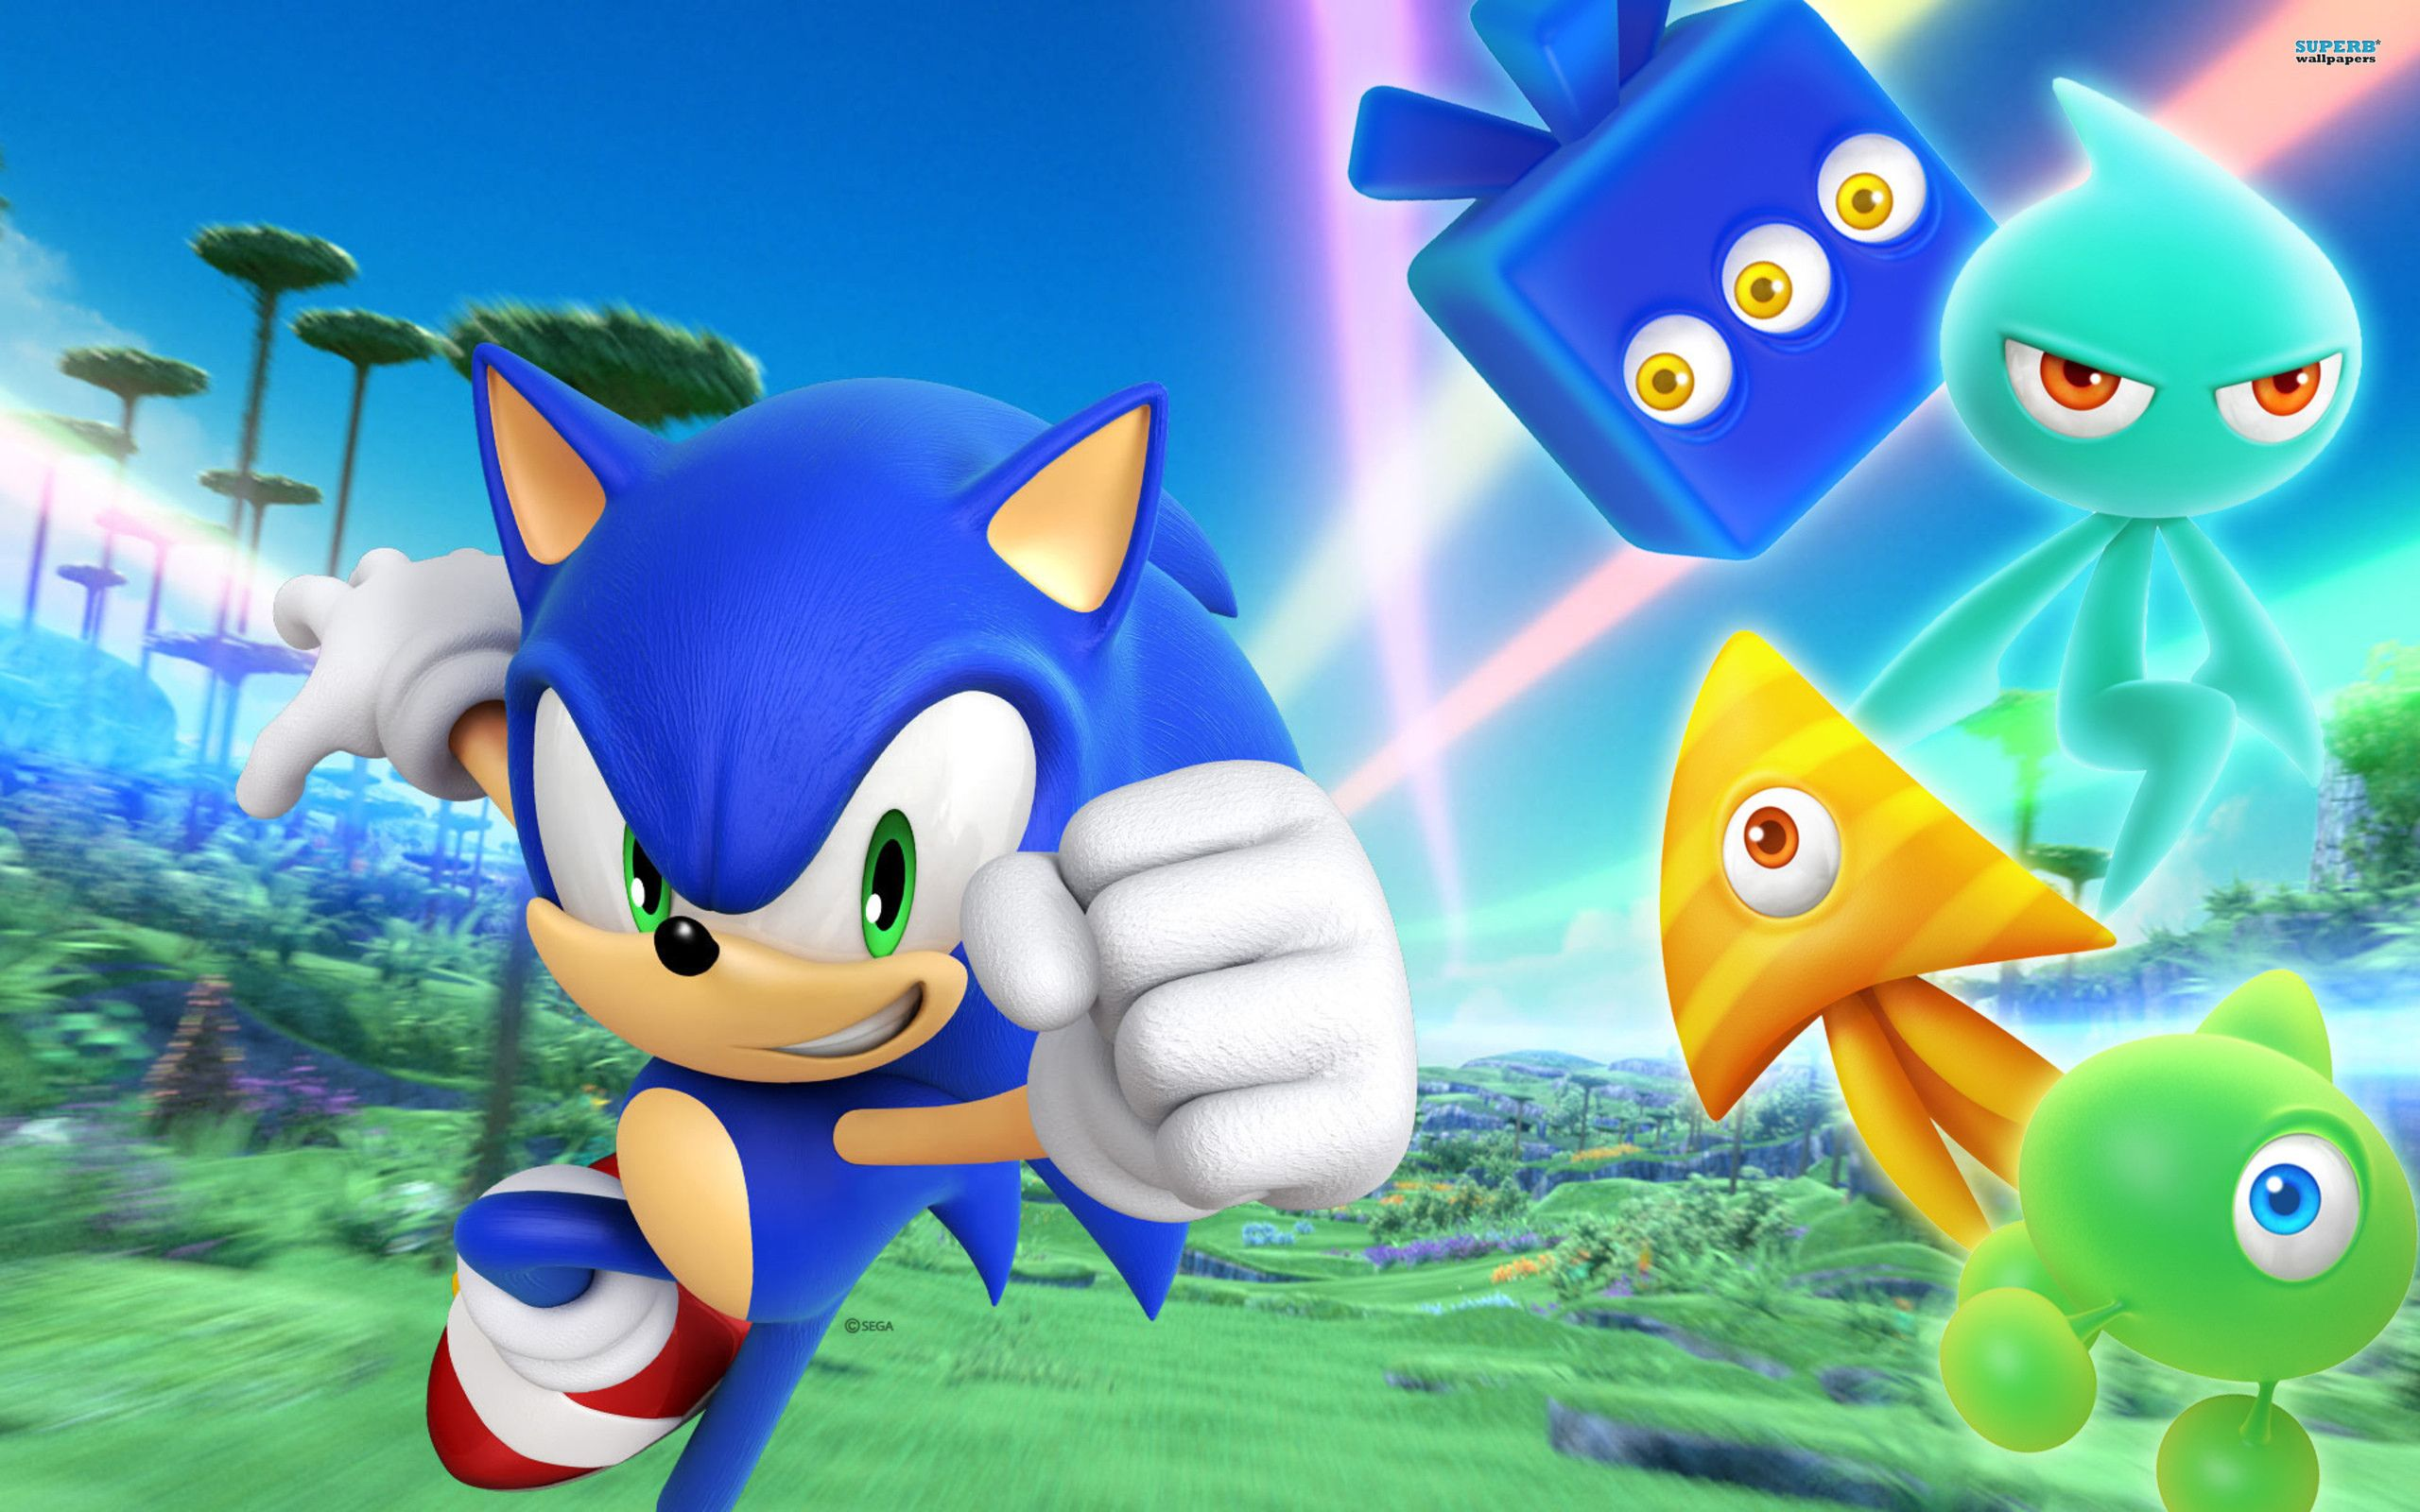 Sonic The Hedgehog Wallpapers 2015 - Wallpaper Cave